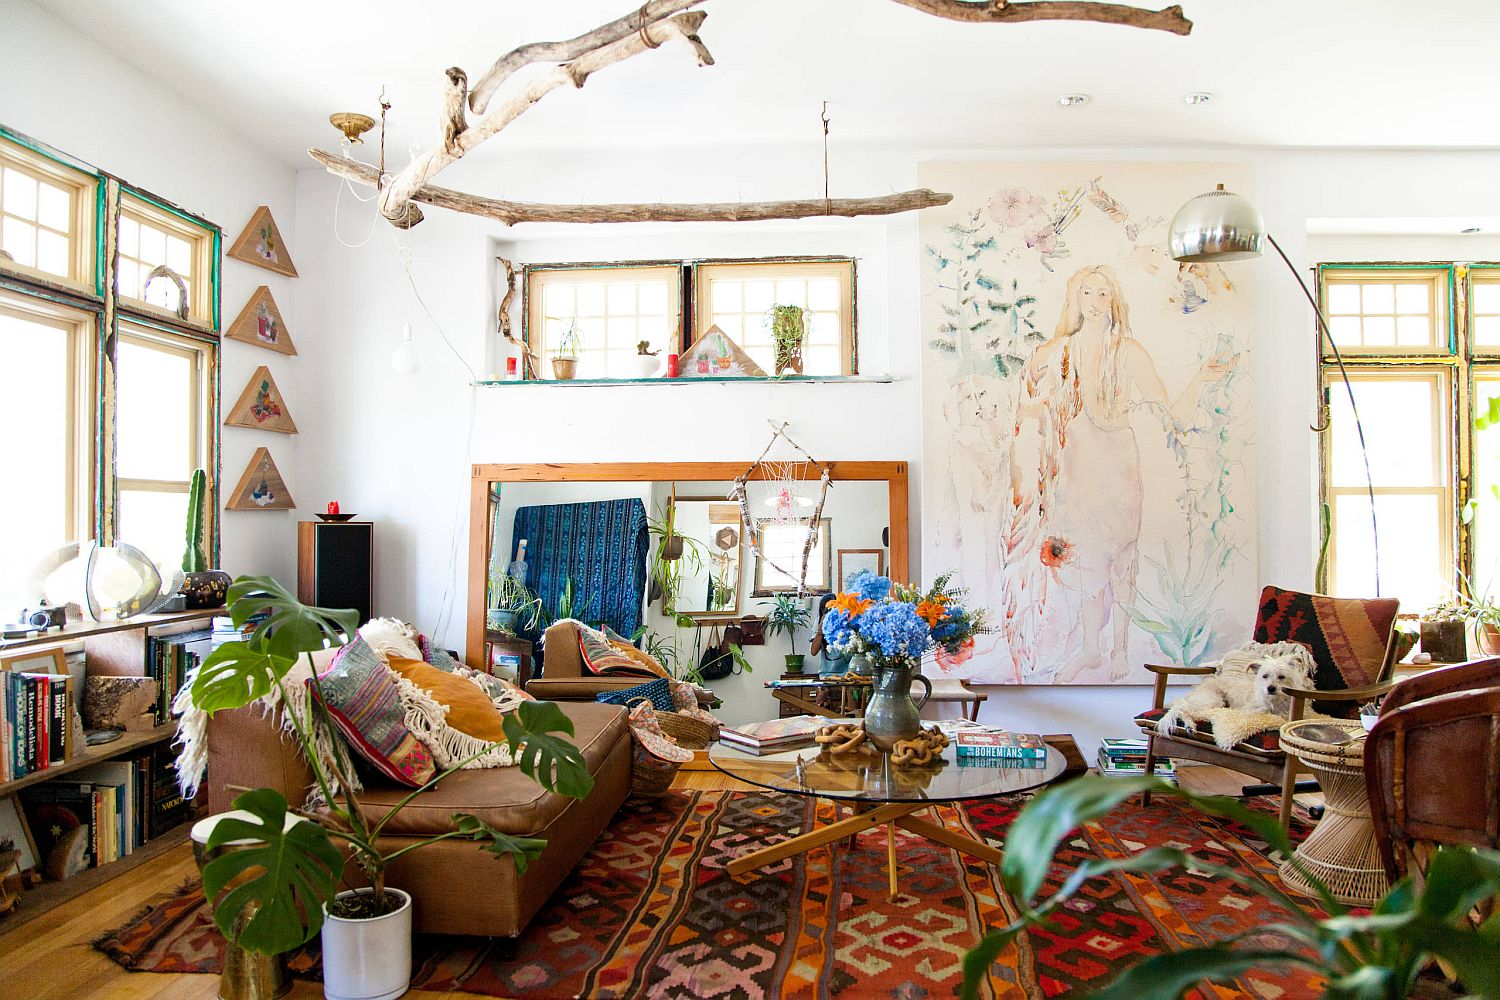 This is a boho chic living room where you find an overload of pattern no matter where you turn!